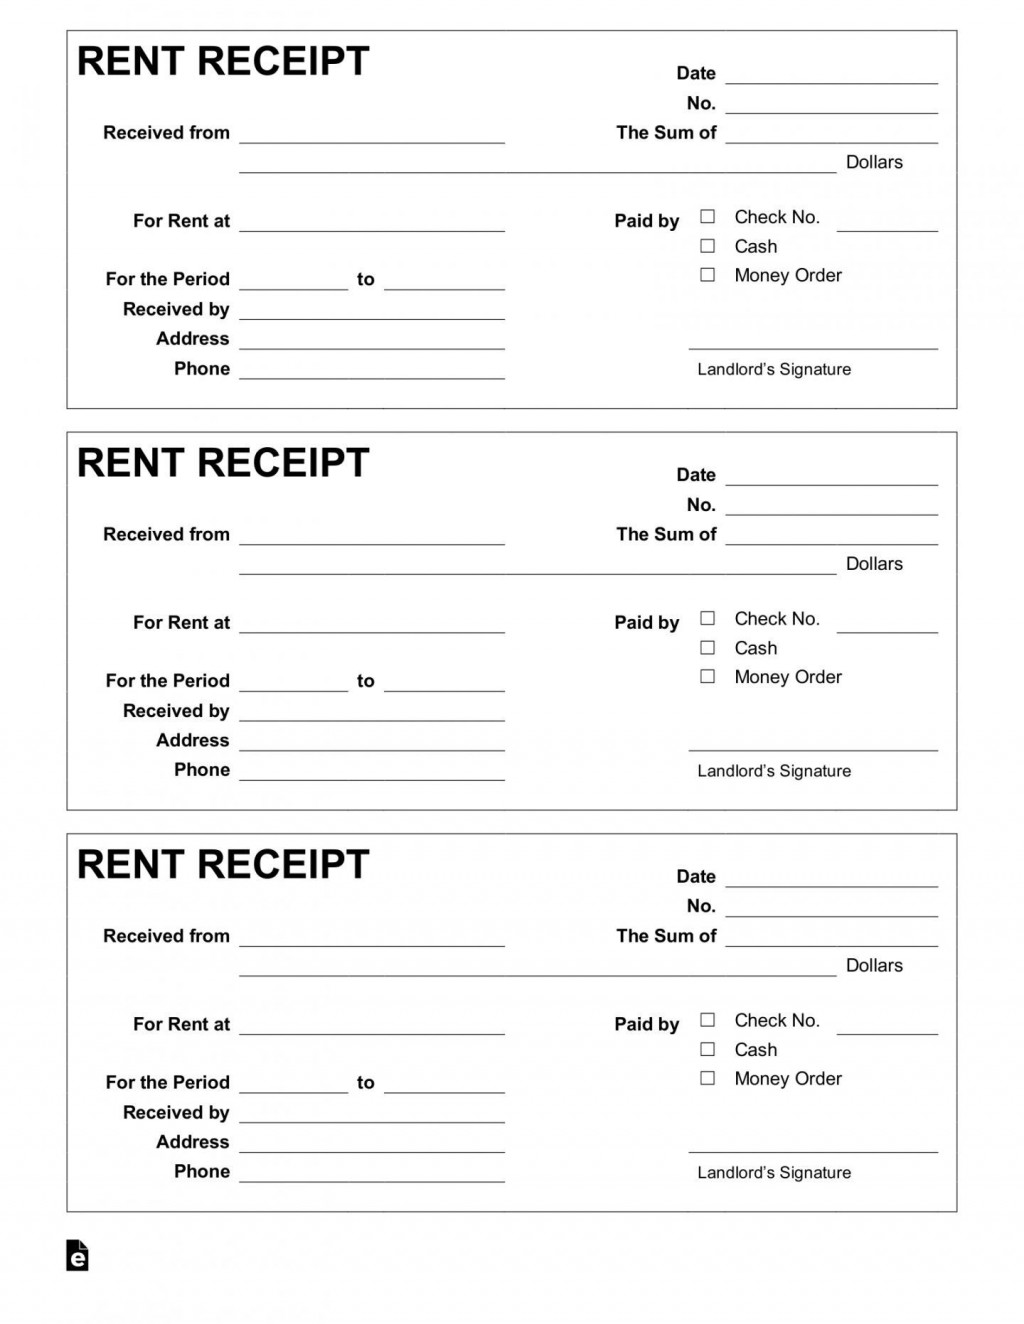 001 Amazing Rent Payment Receipt Template Inspiration  Excel FreeLarge